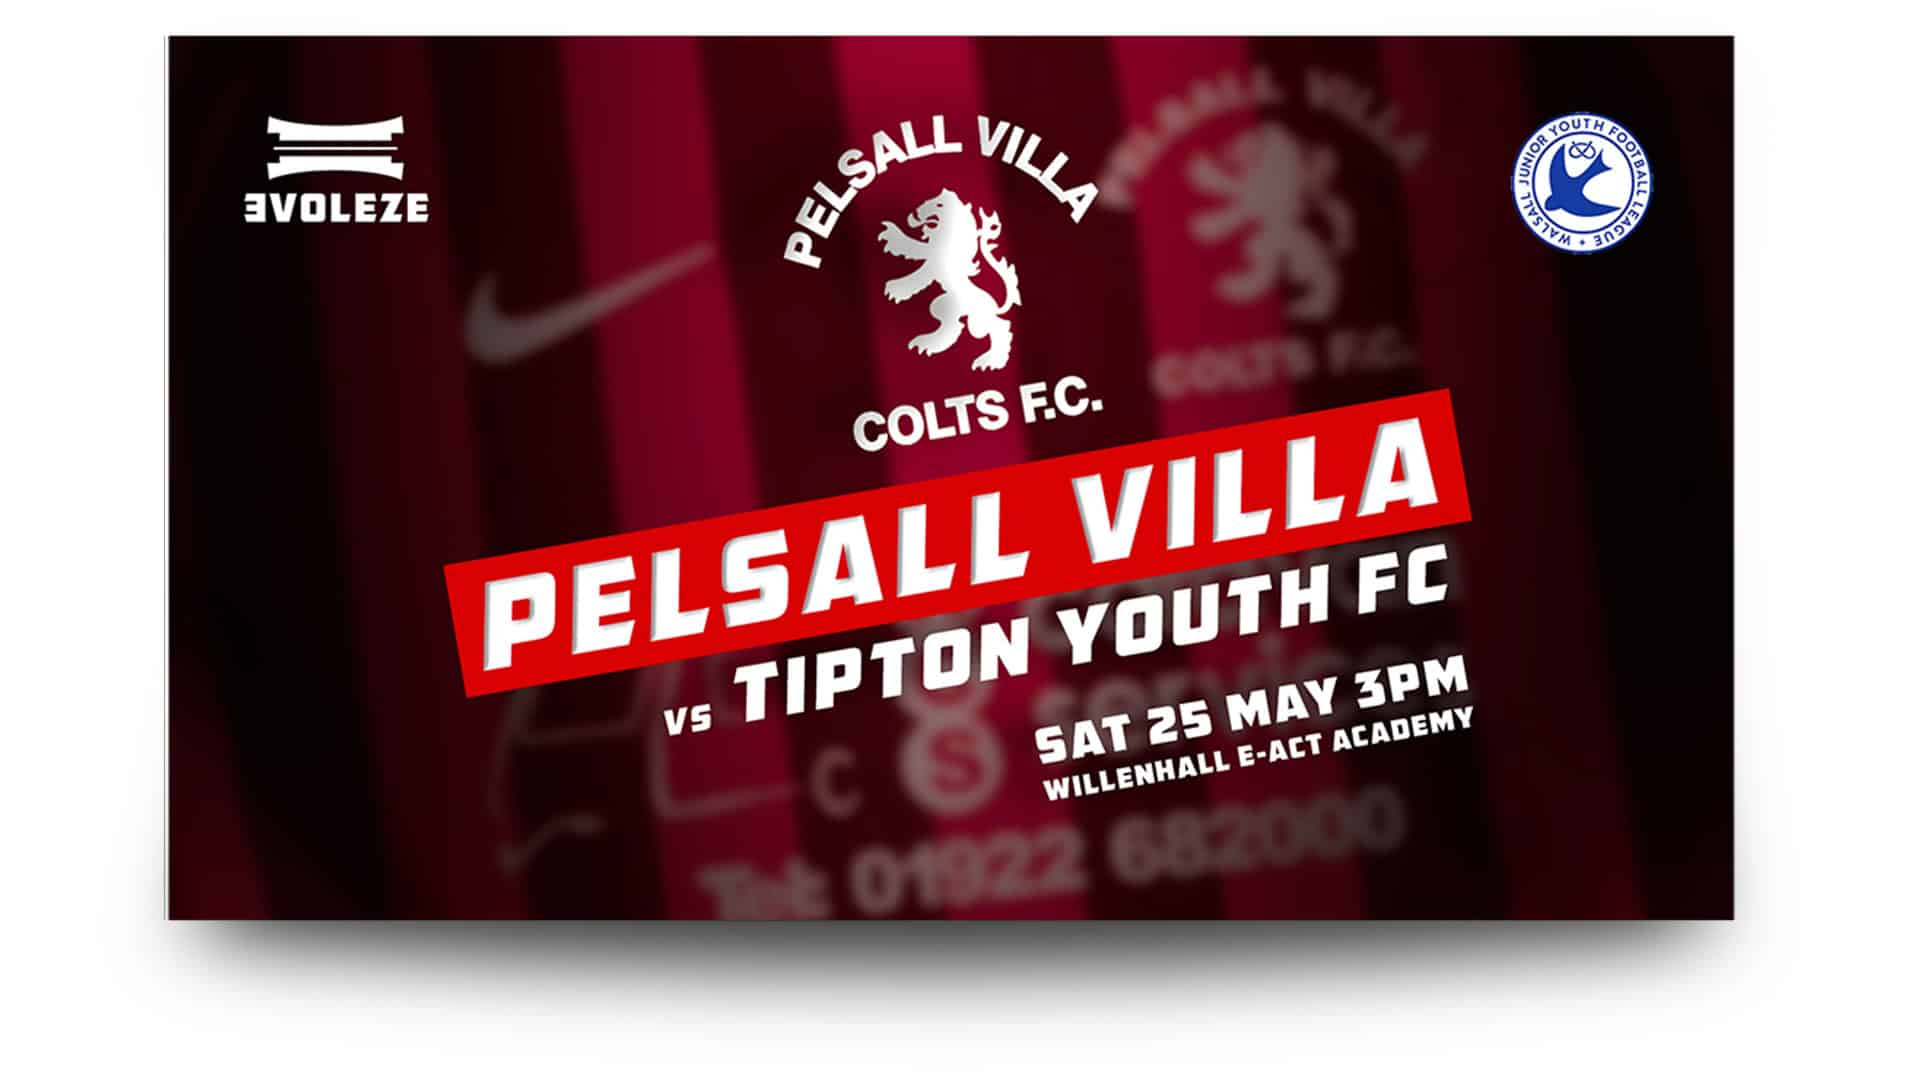 pelsall villa colts fc home - free matchday graphics